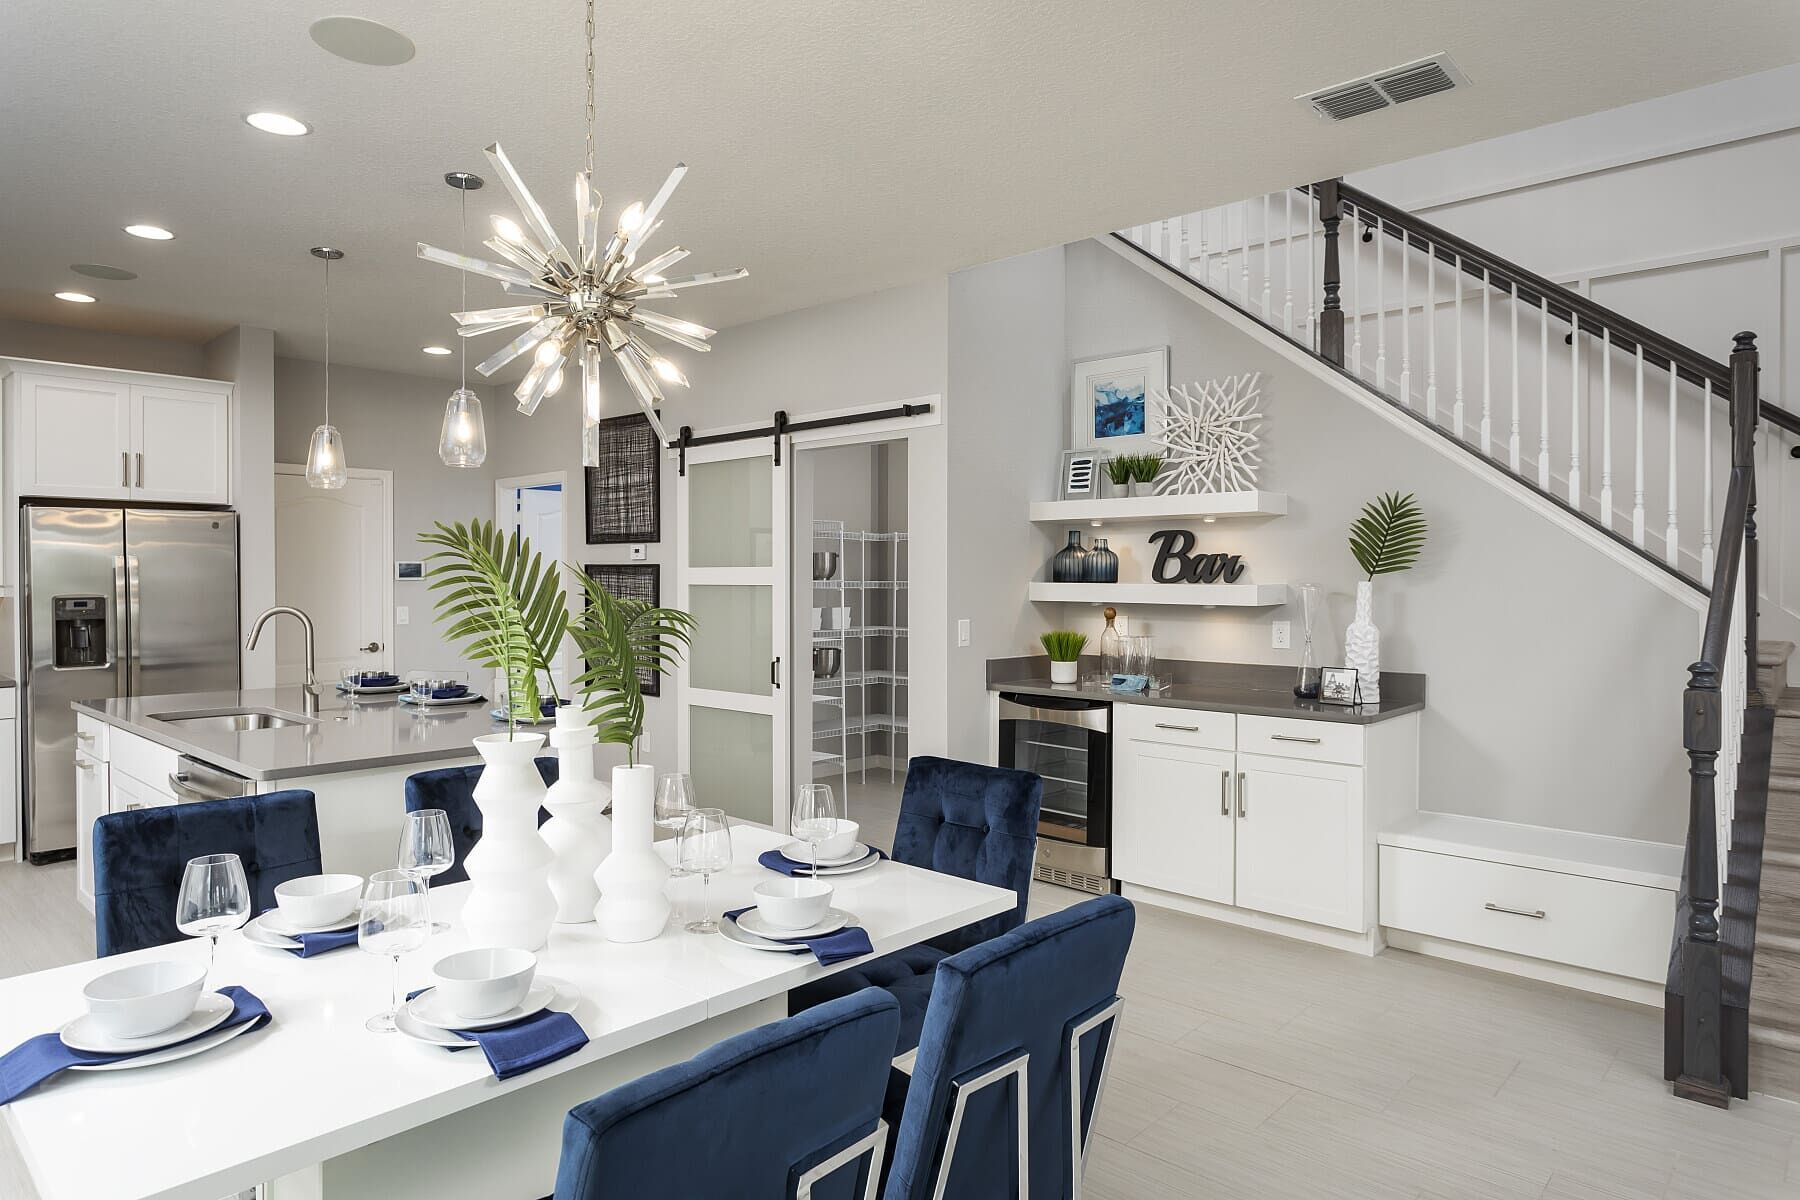 Kitchen featured in the Sebring By M/I Homes in Orlando, FL